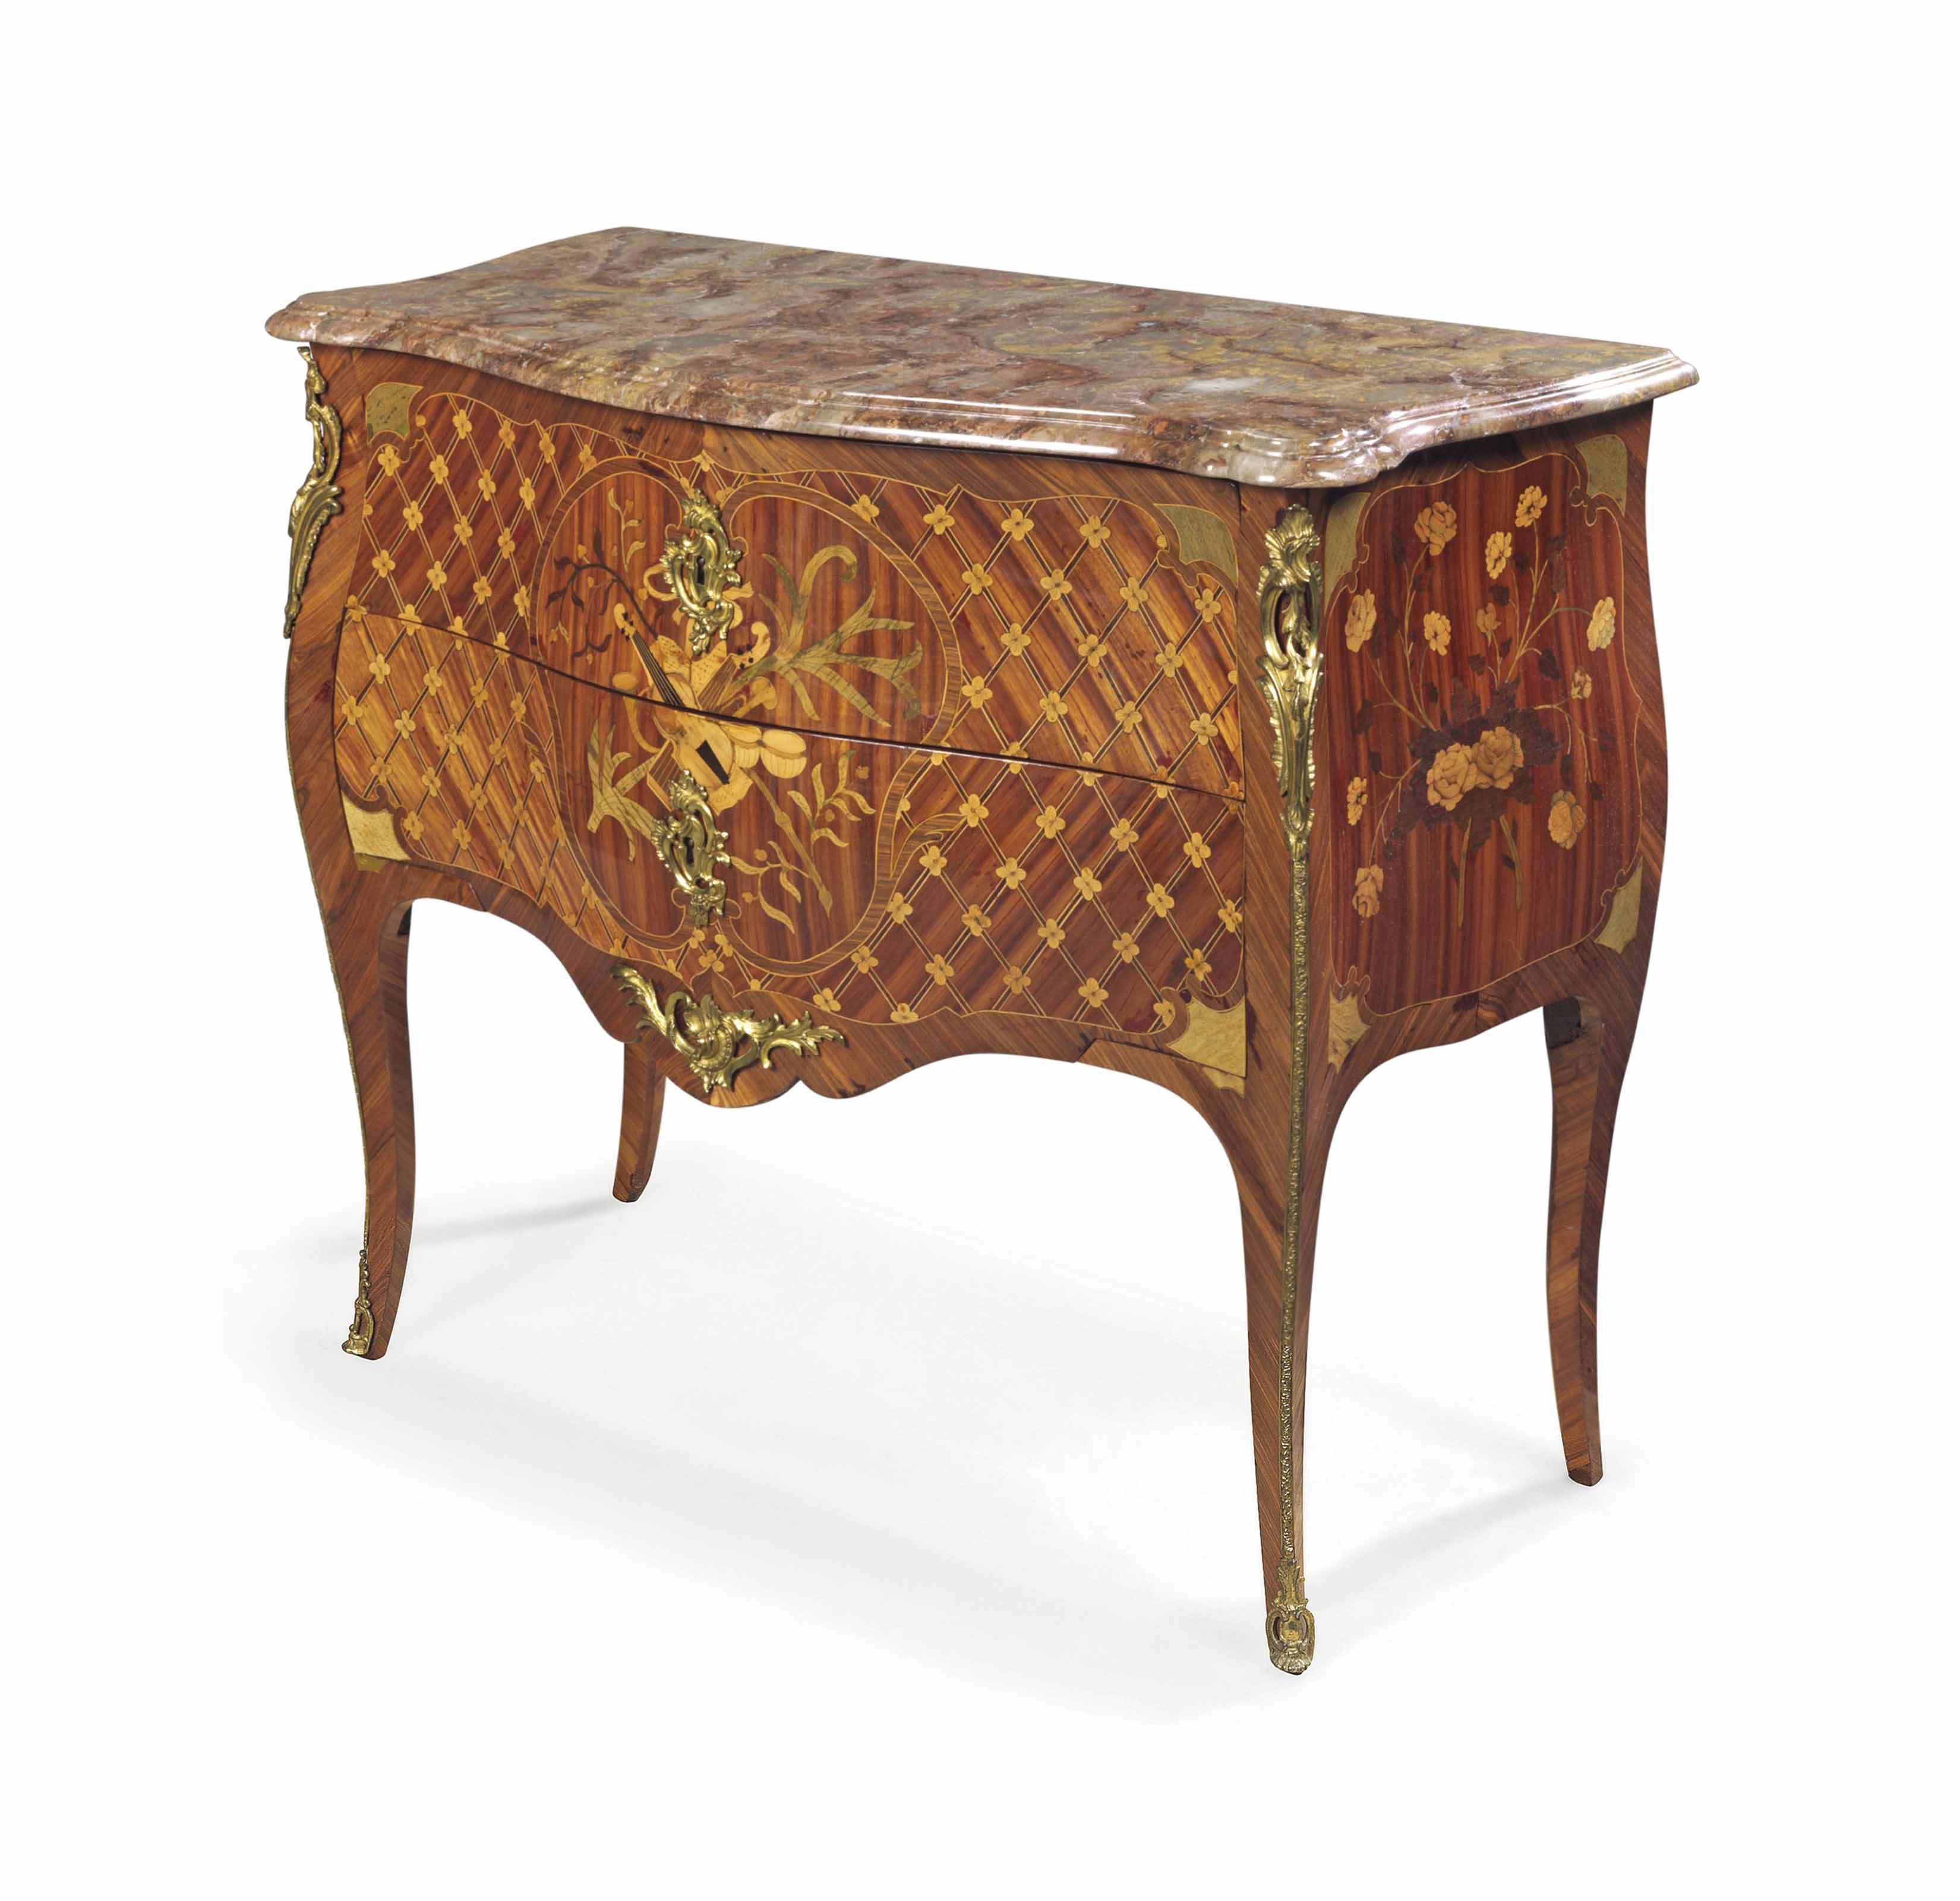 A LOUIS XV ORMOLU-MOUNTED KINGWOOD , BOIS SATINE AND FRUITWOOD MARQUETRY BOMBE COMMODE